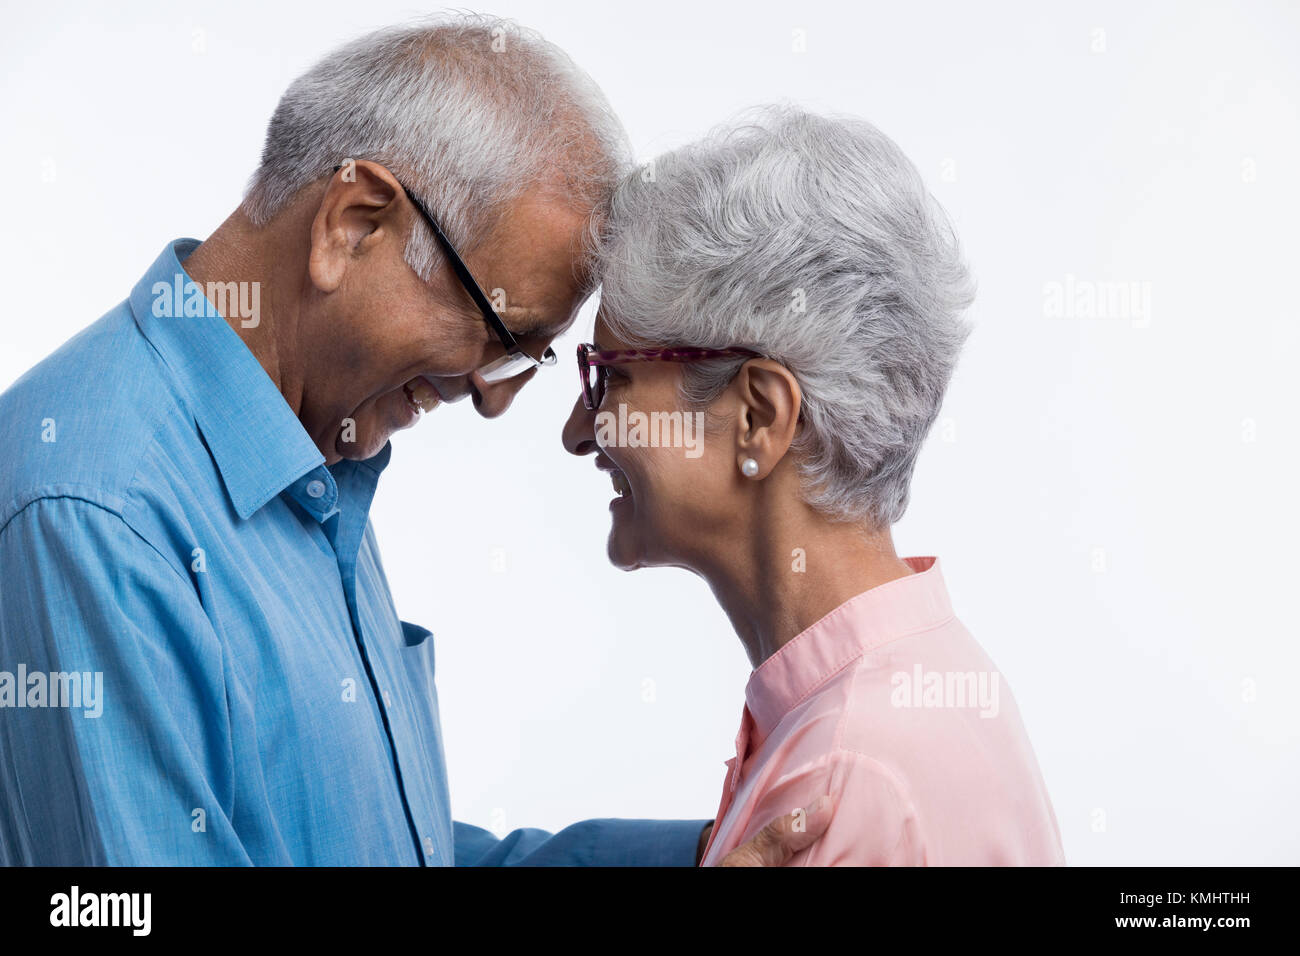 Senior couple looking at each other touching heads - Stock Image